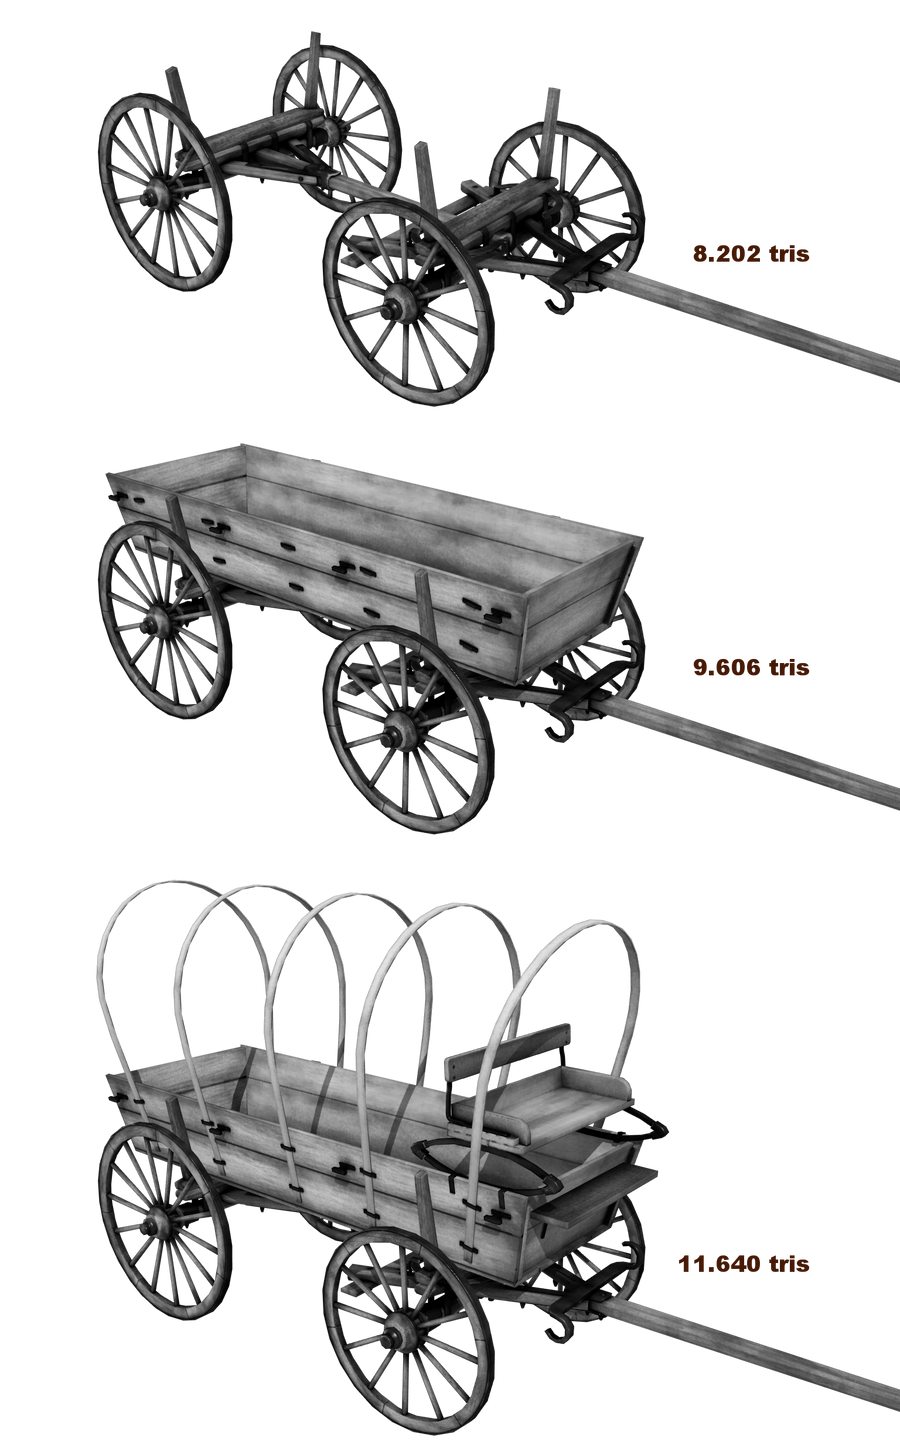 Covered wagon wip 1 by mardraq on deviantart for Covered wagon plans